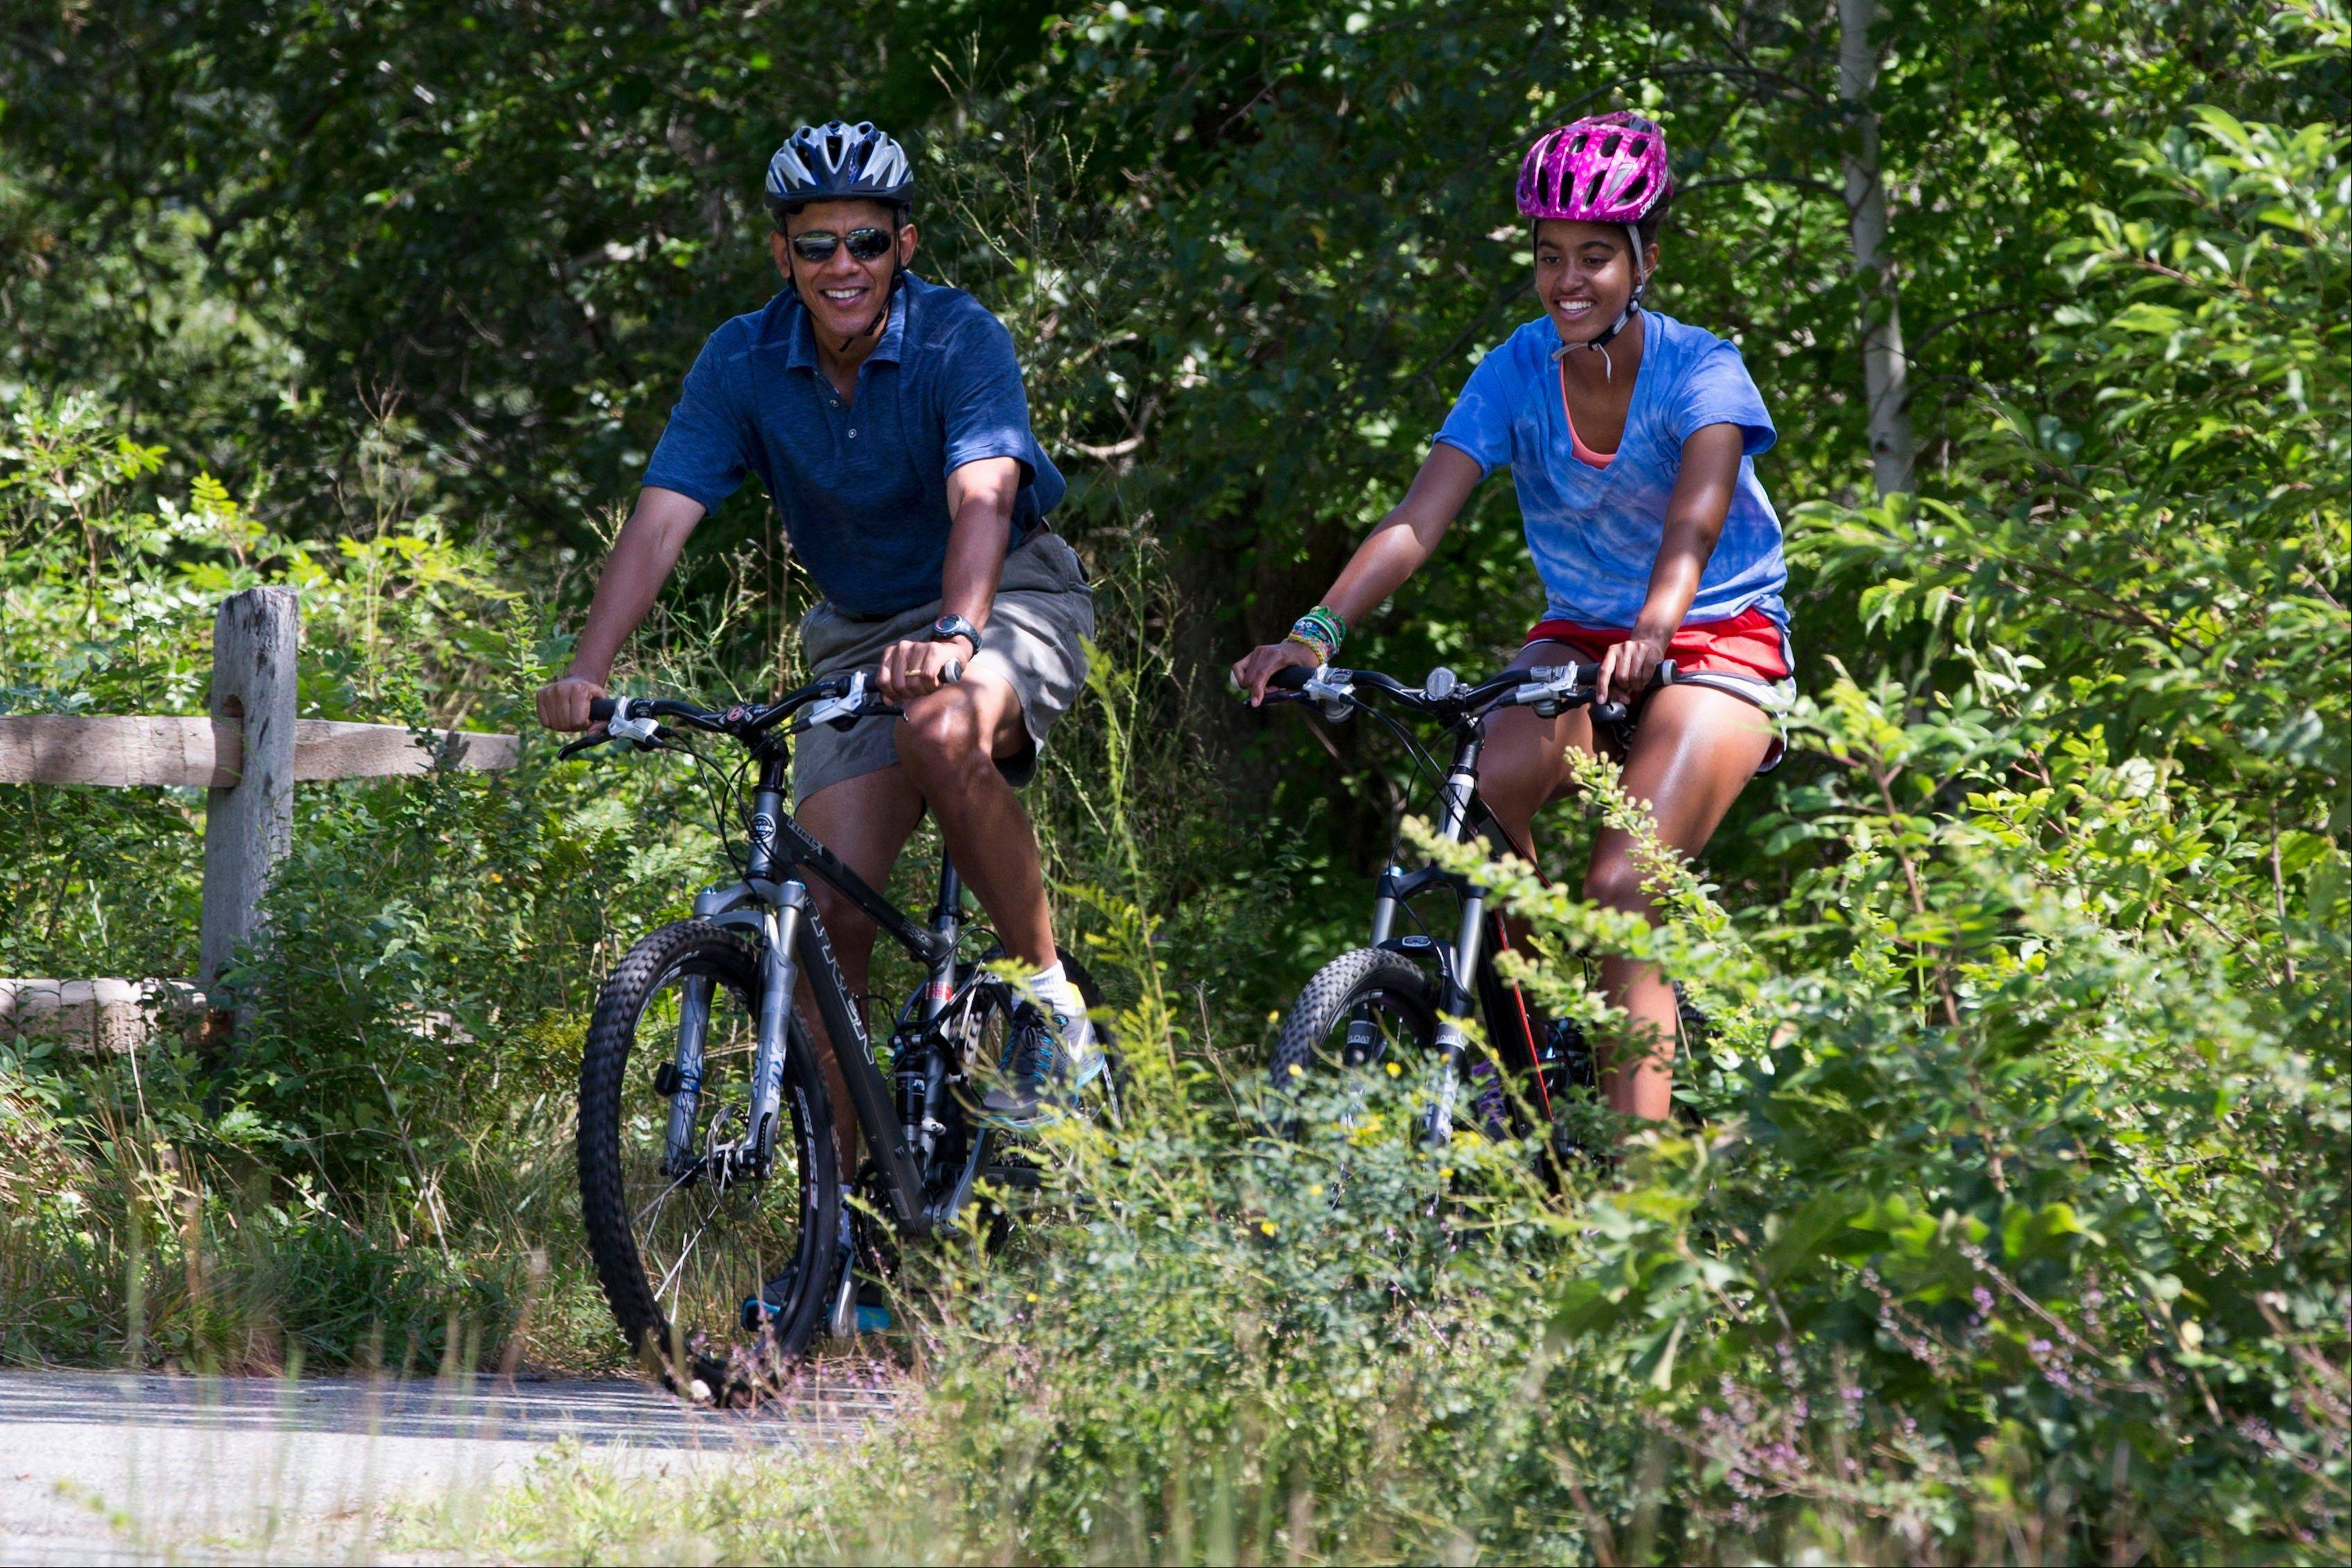 President Barack Obama, with daughter Malia, rides bicycles in Manuel F. Correllus State Forest, after first lady Michelle Obama, with daughter Sasha, not pictured, passed by first, during their family vacation on the island of Martha�s Vineyard.